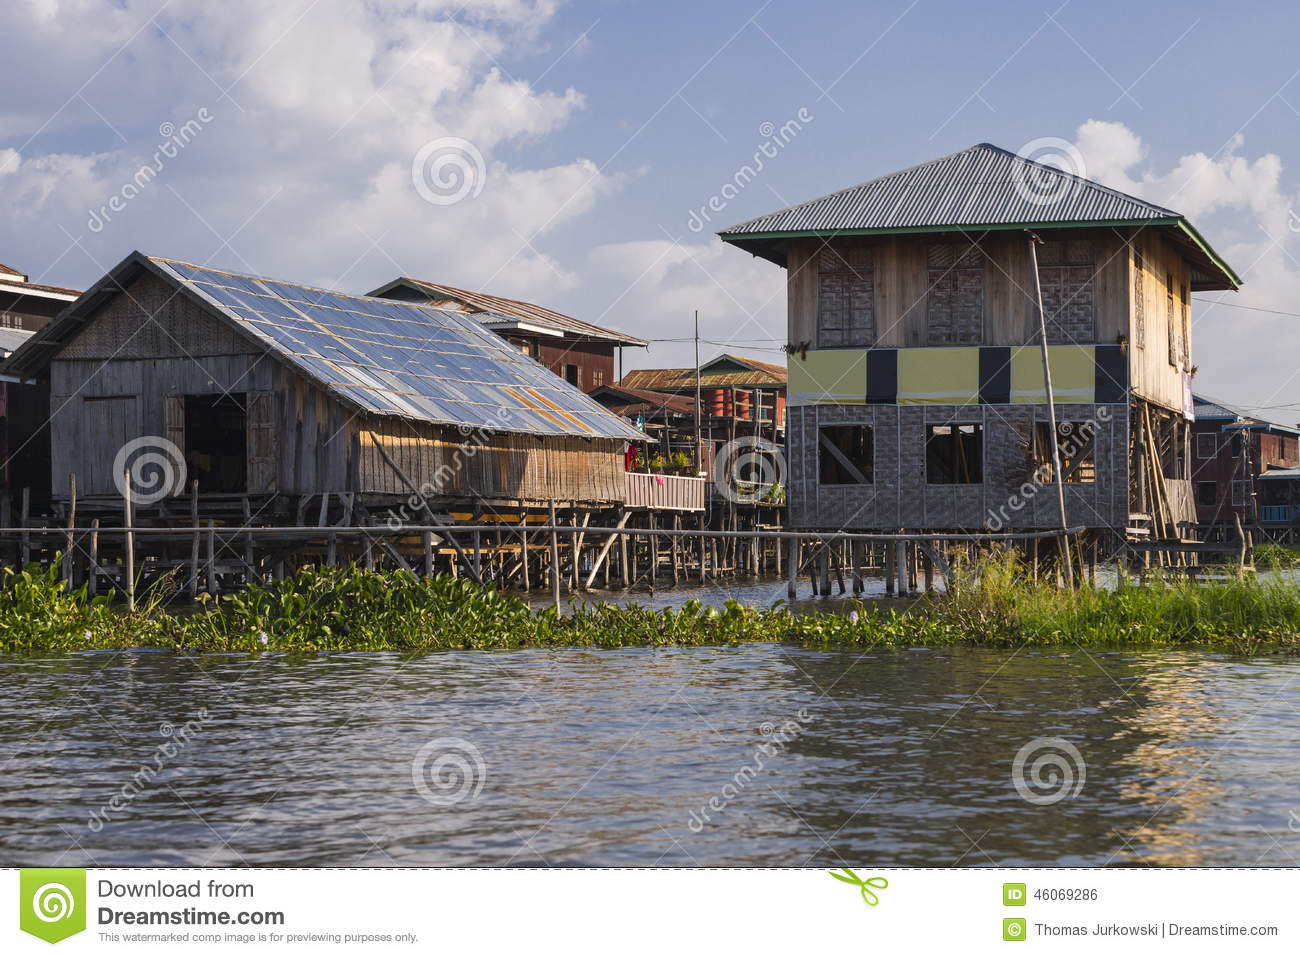 Building on the Inle lake